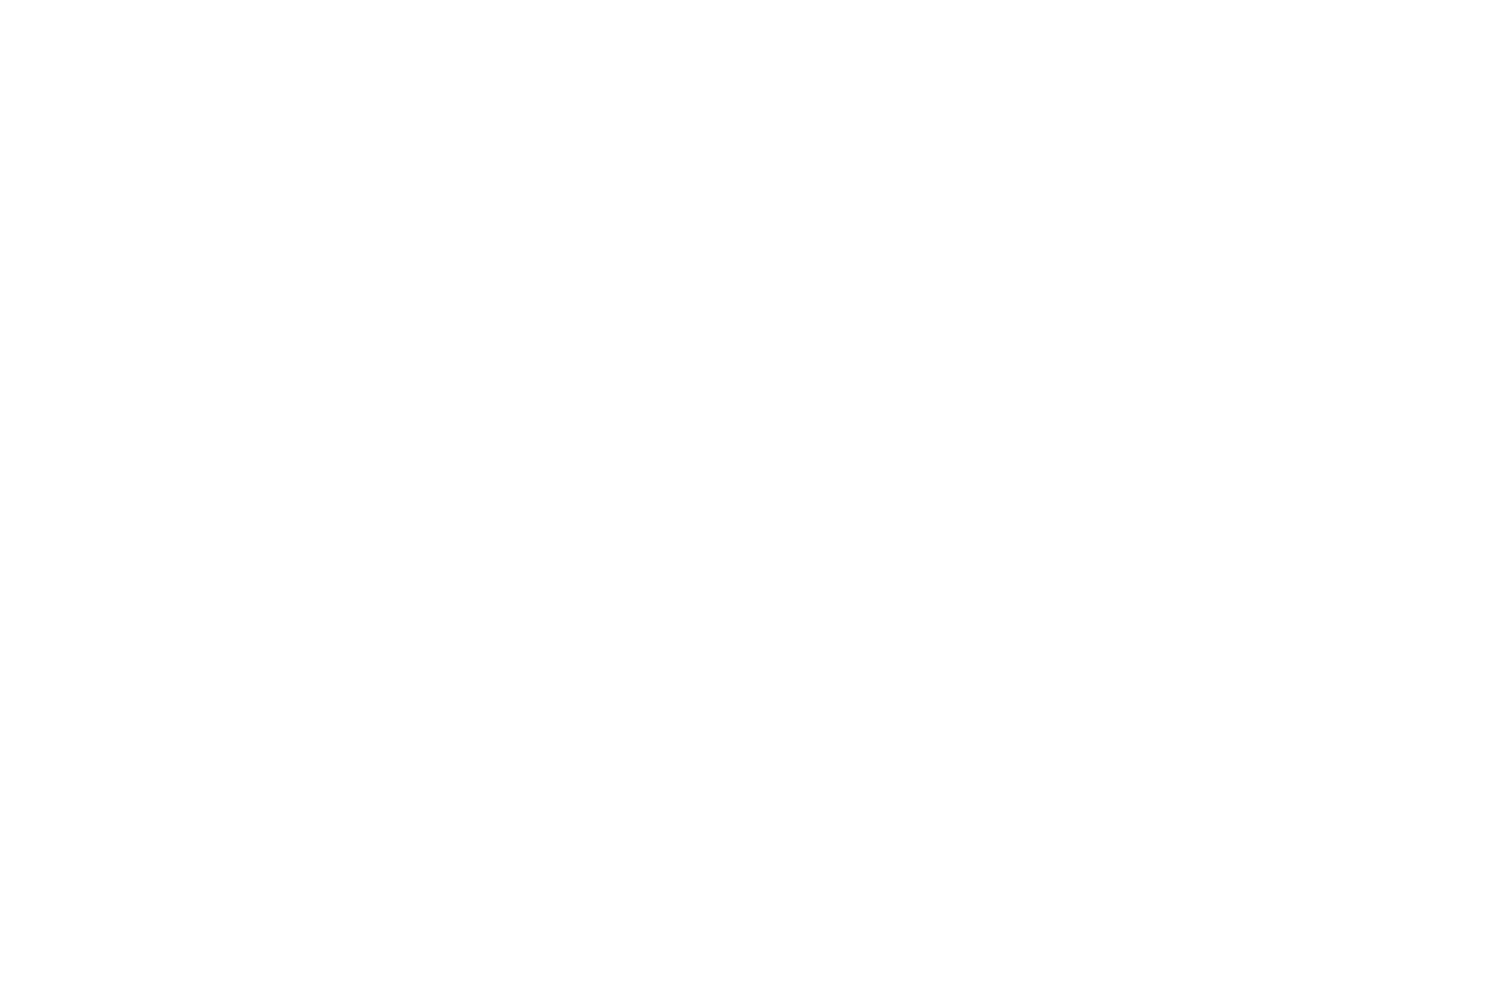 DIVINE ATTRACTION